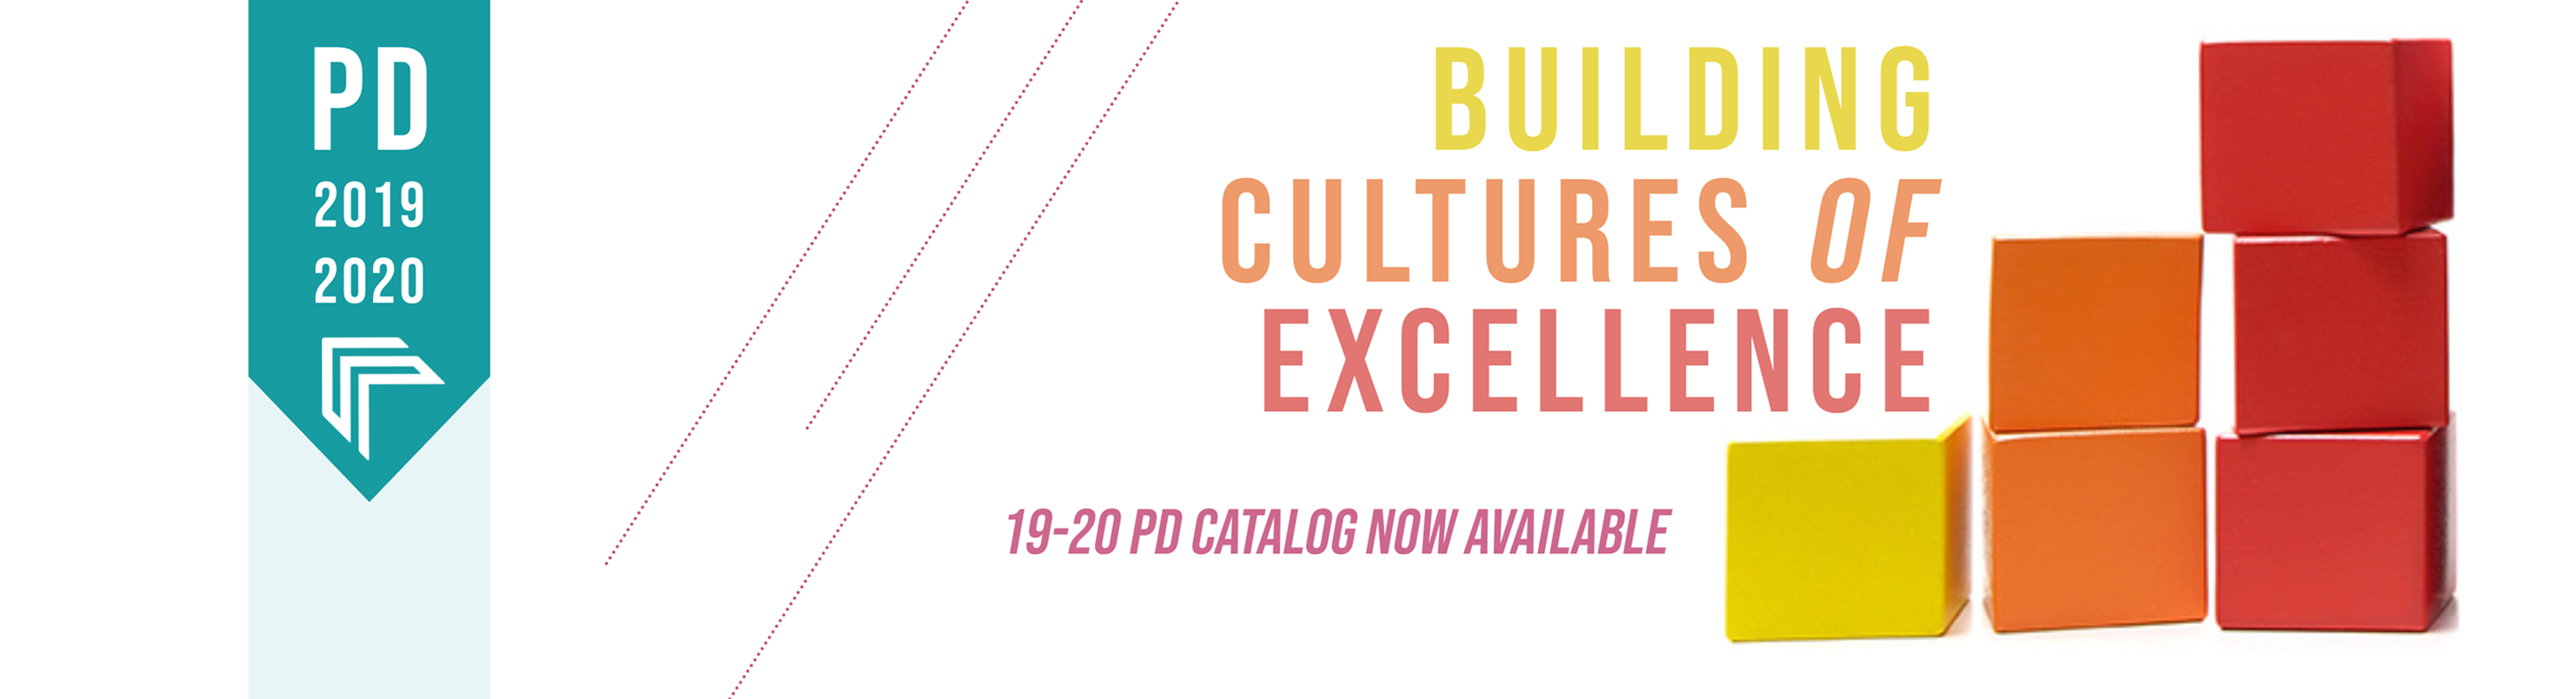 NWOESC 19-20 PD Catalog